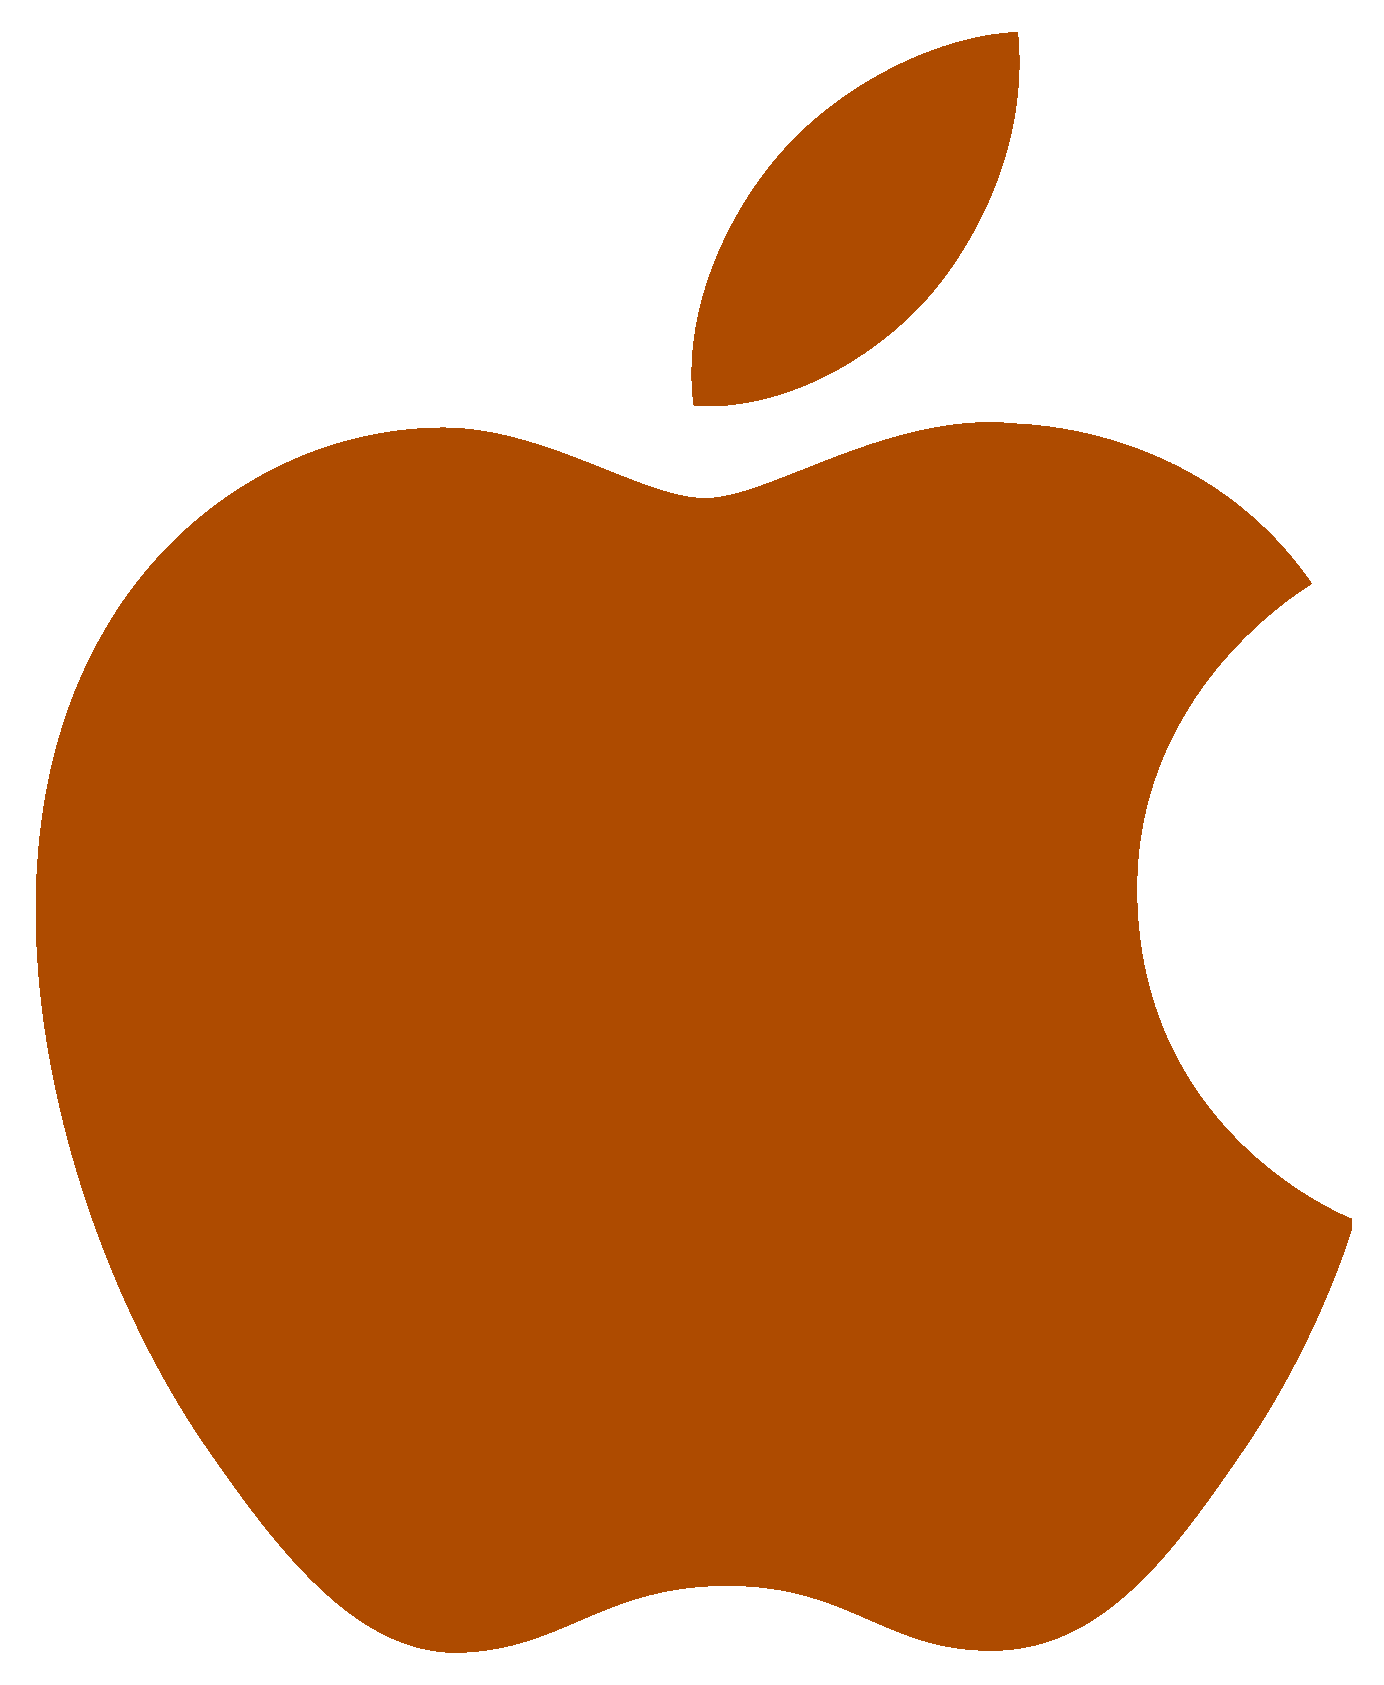 Apple rotting clipart picture freeuse stock Index of /img picture freeuse stock